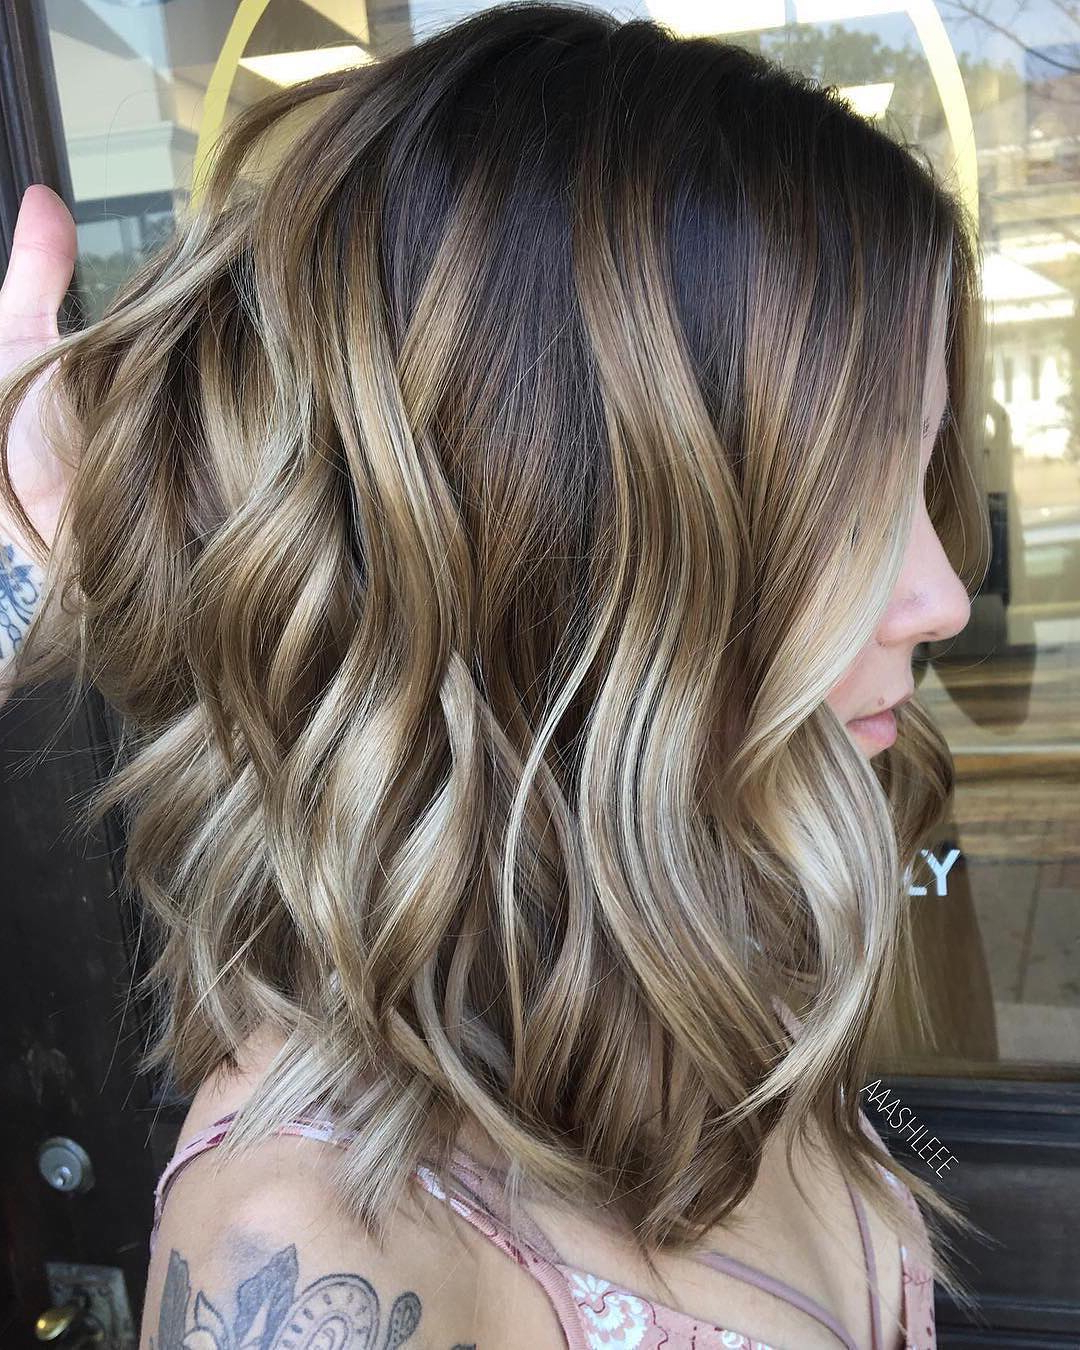 Most Current Long Layered Ombre Hairstyles With Regard To 10 Ombre Balayage Hairstyles For Medium Length Hair, Hair Color (View 12 of 20)